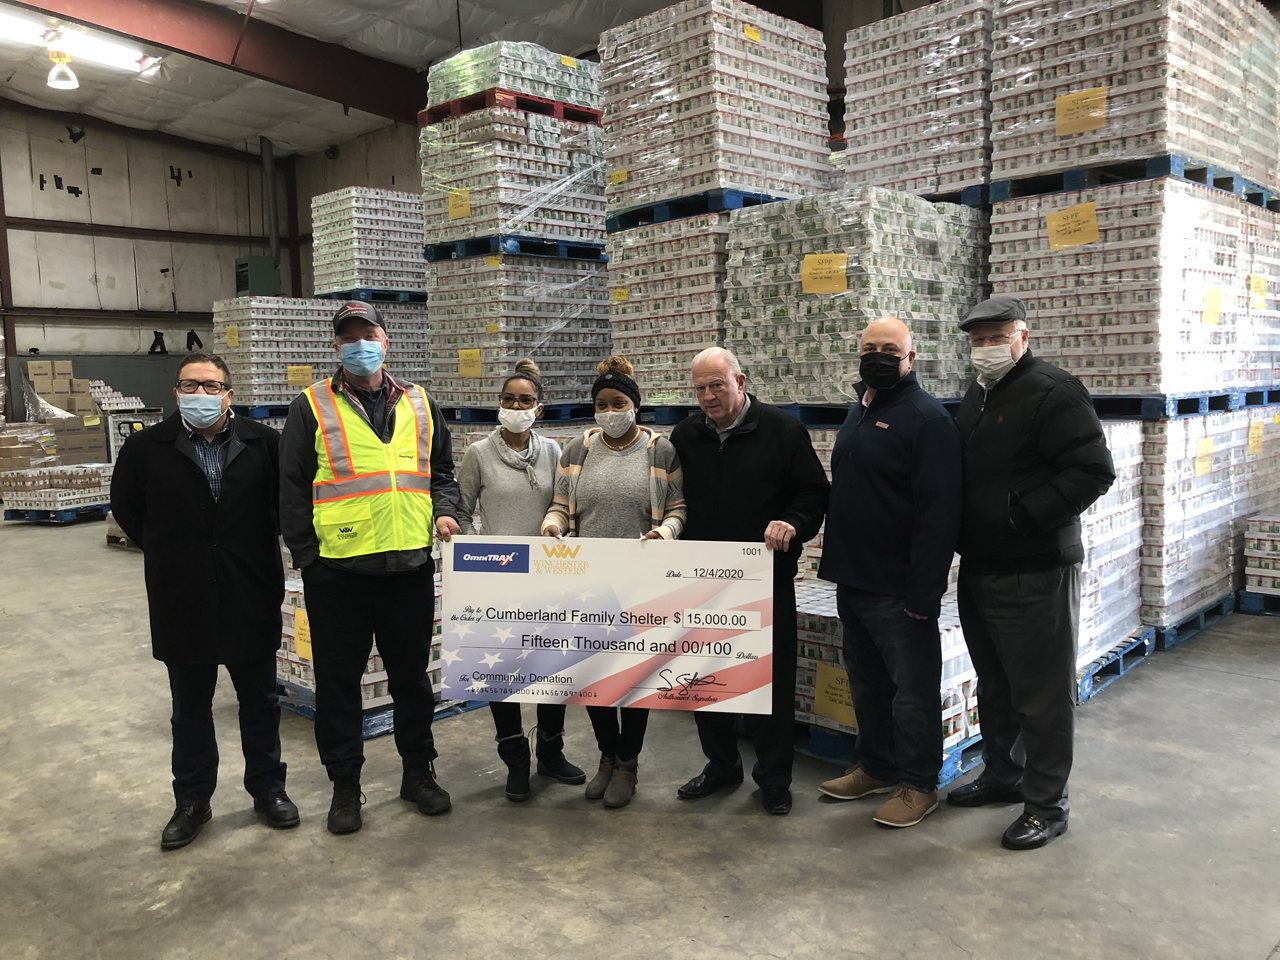 OmniTRAX COO Gord Anutooshkin (far left) recently announced partnerships with four of the company's short line affiliates to pledge meals and volunteer service for non-profits like New Jersey's Southern Regional Food Distribution Center (pictured).